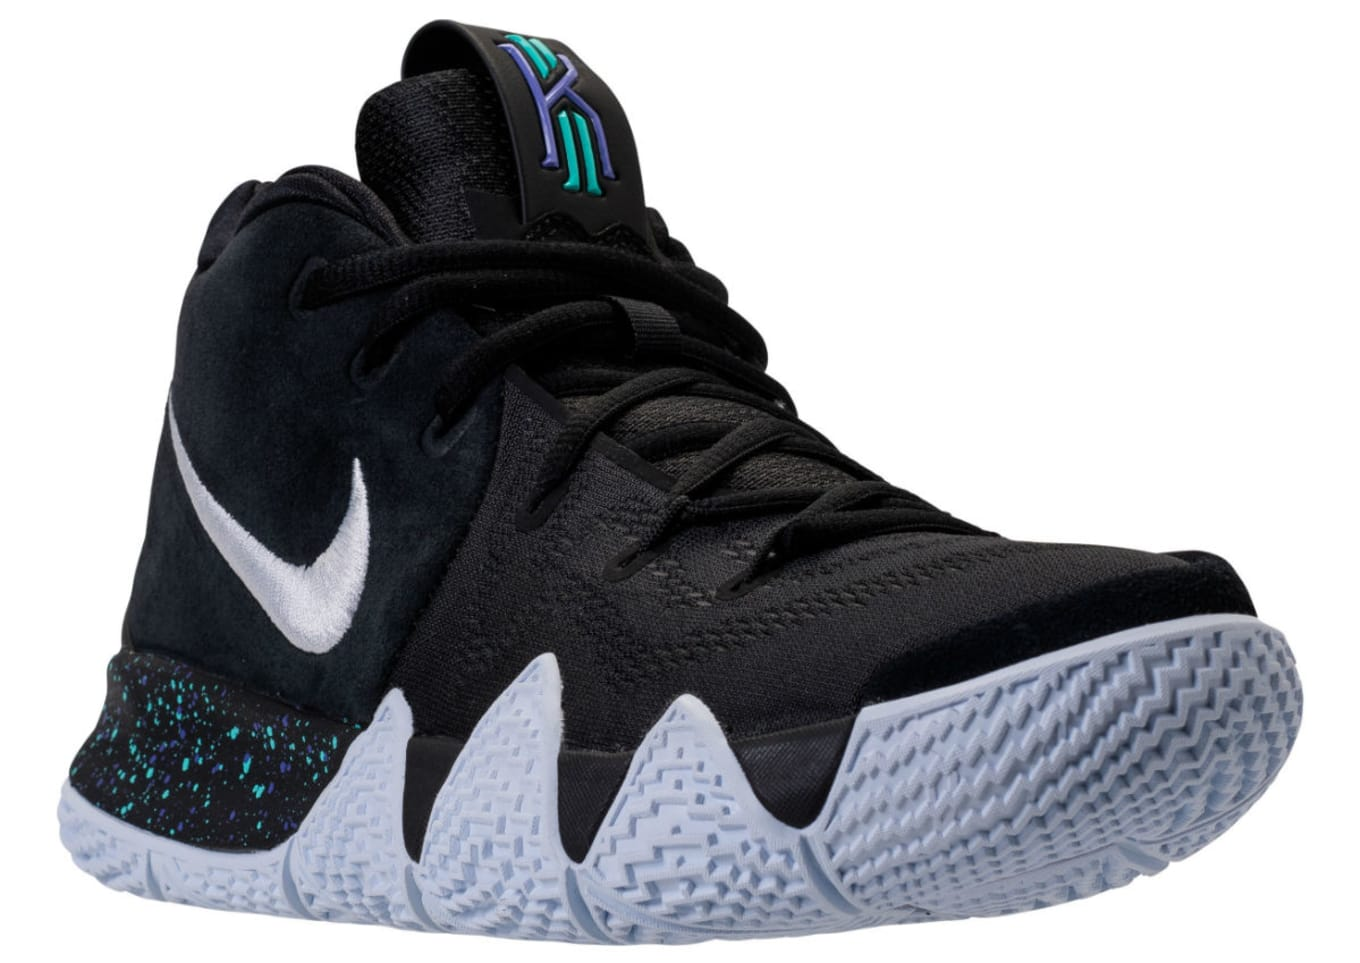 new arrival e7fb1 a3ddb Nike Kyrie 4 Black White Release Date 943806-002 | Sole ...